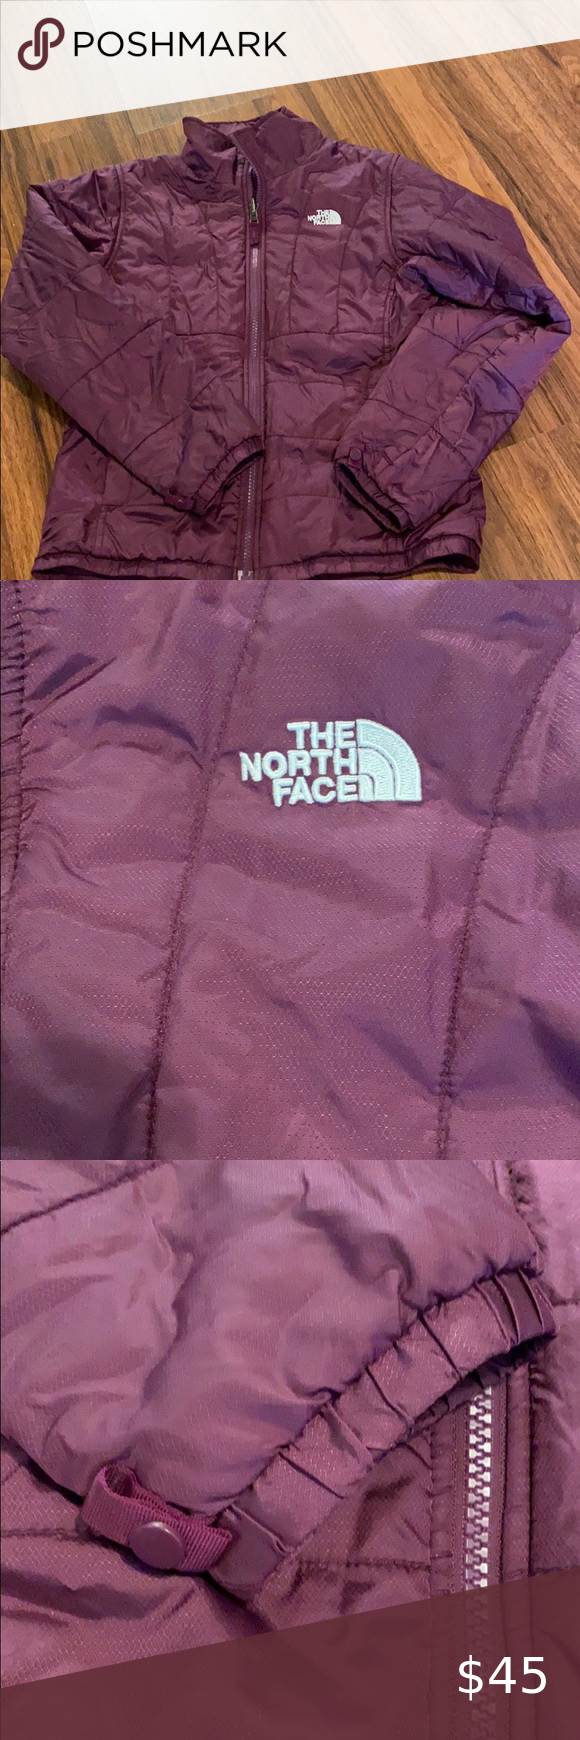 The North Face Puffer Jacket North Face Puffer Jacket Long North Face Jacket North Face Long Coat [ 1740 x 580 Pixel ]